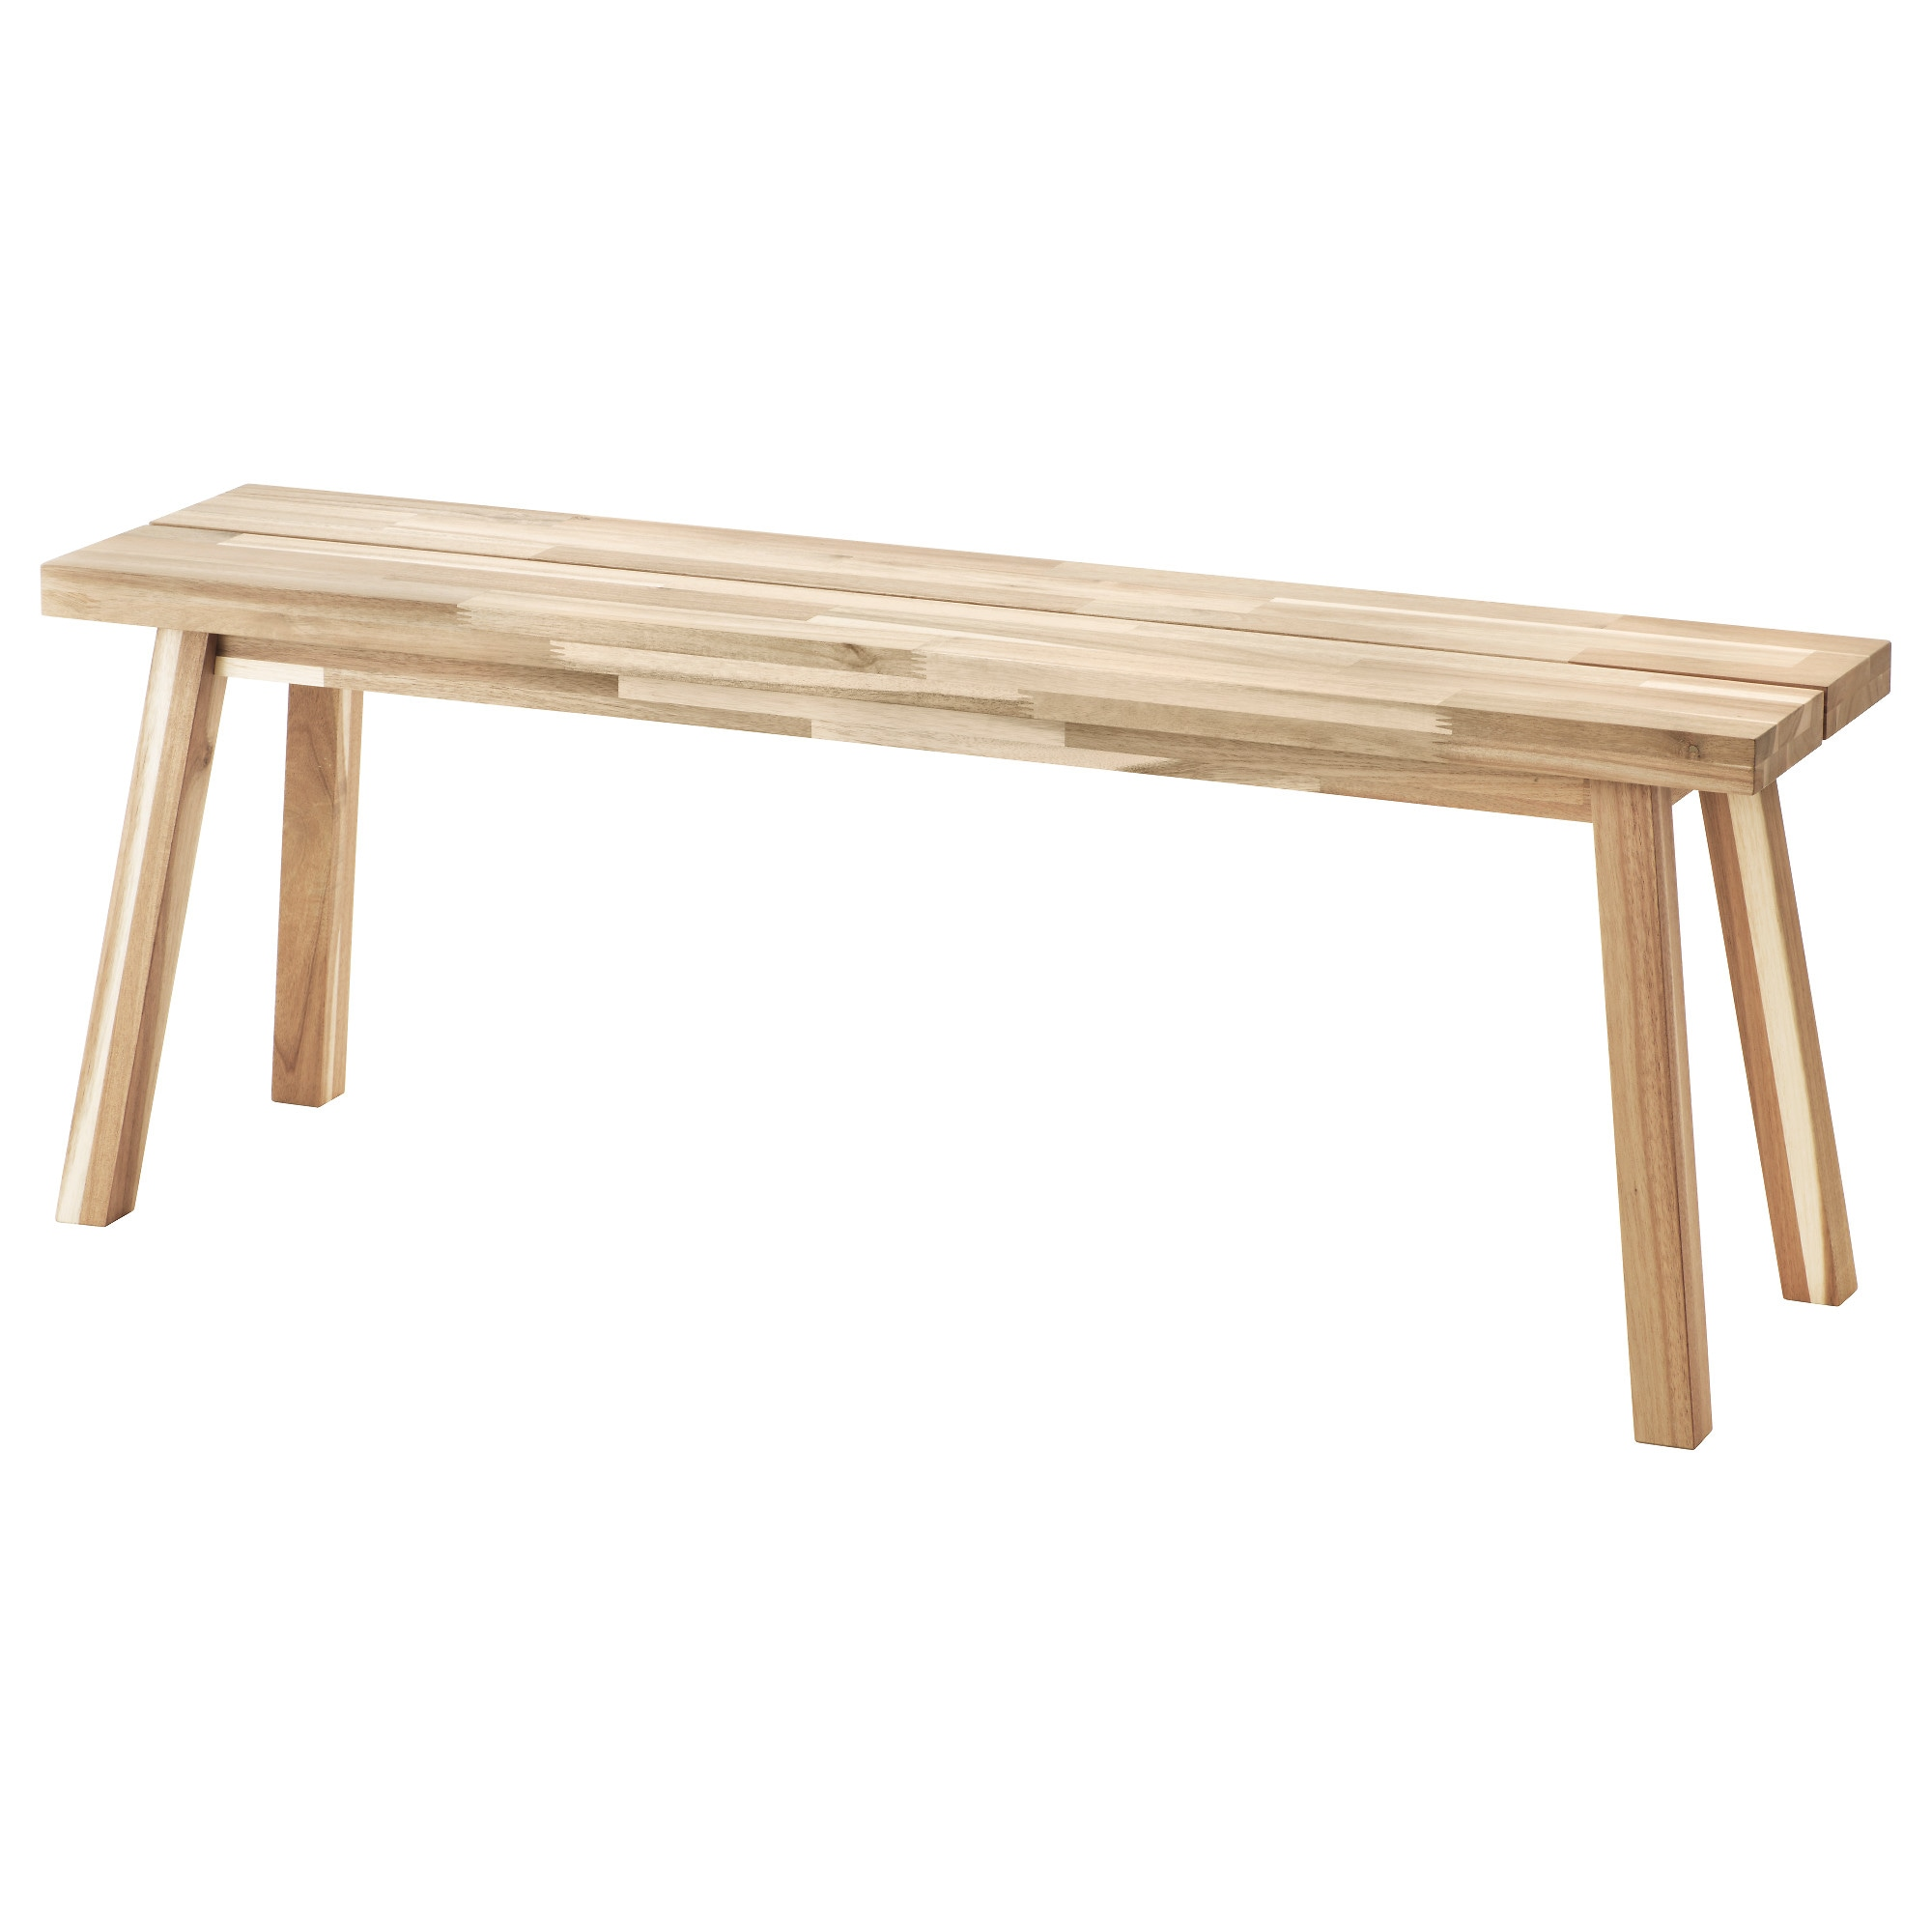 Attractive SKOGSTA Bench   IKEA